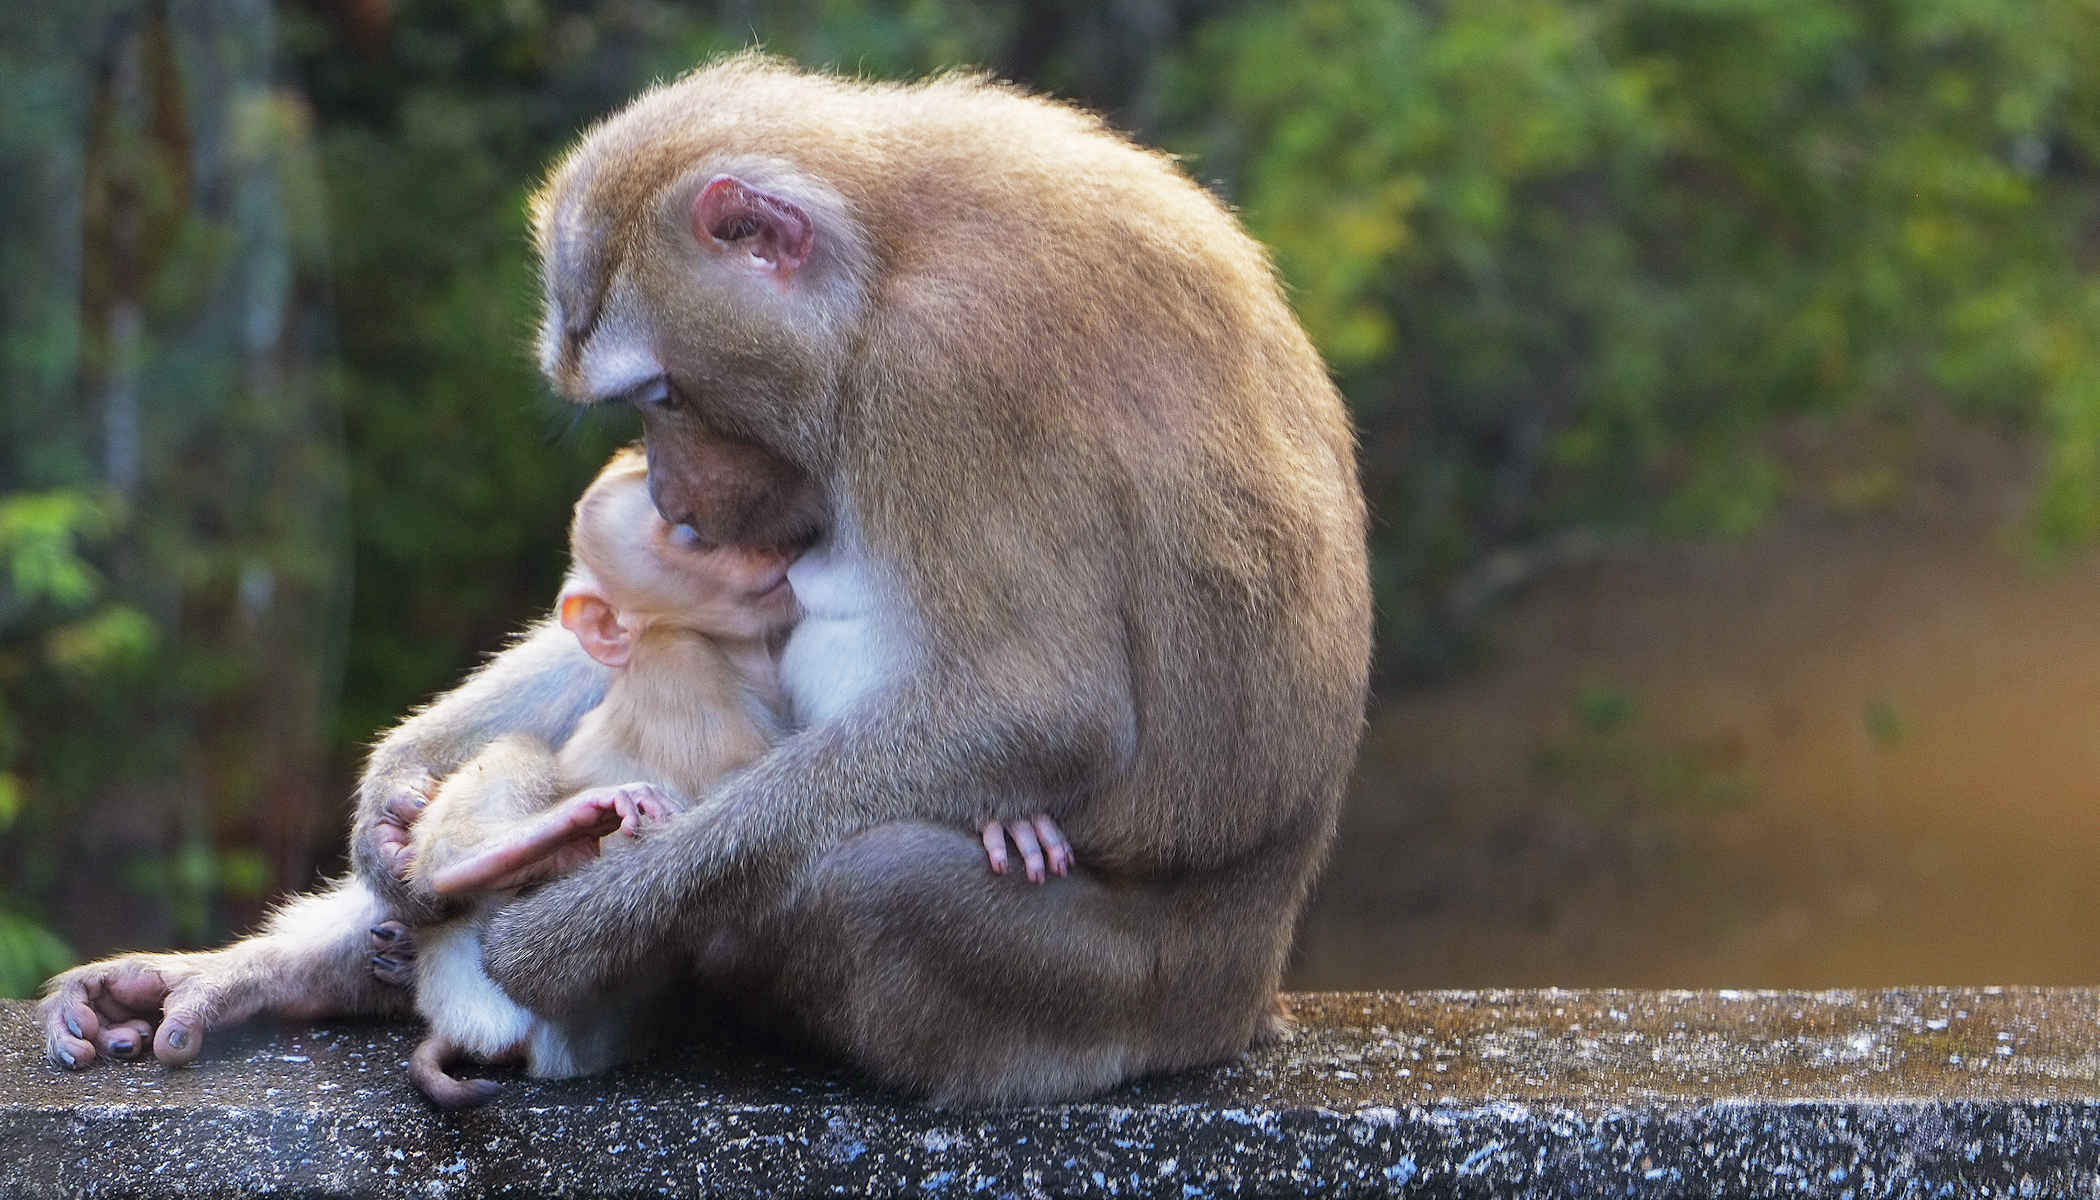 Grief-stricken Monkey Cradled Her 'Lifeless' Baby, Moments Later a Miracle Occurs